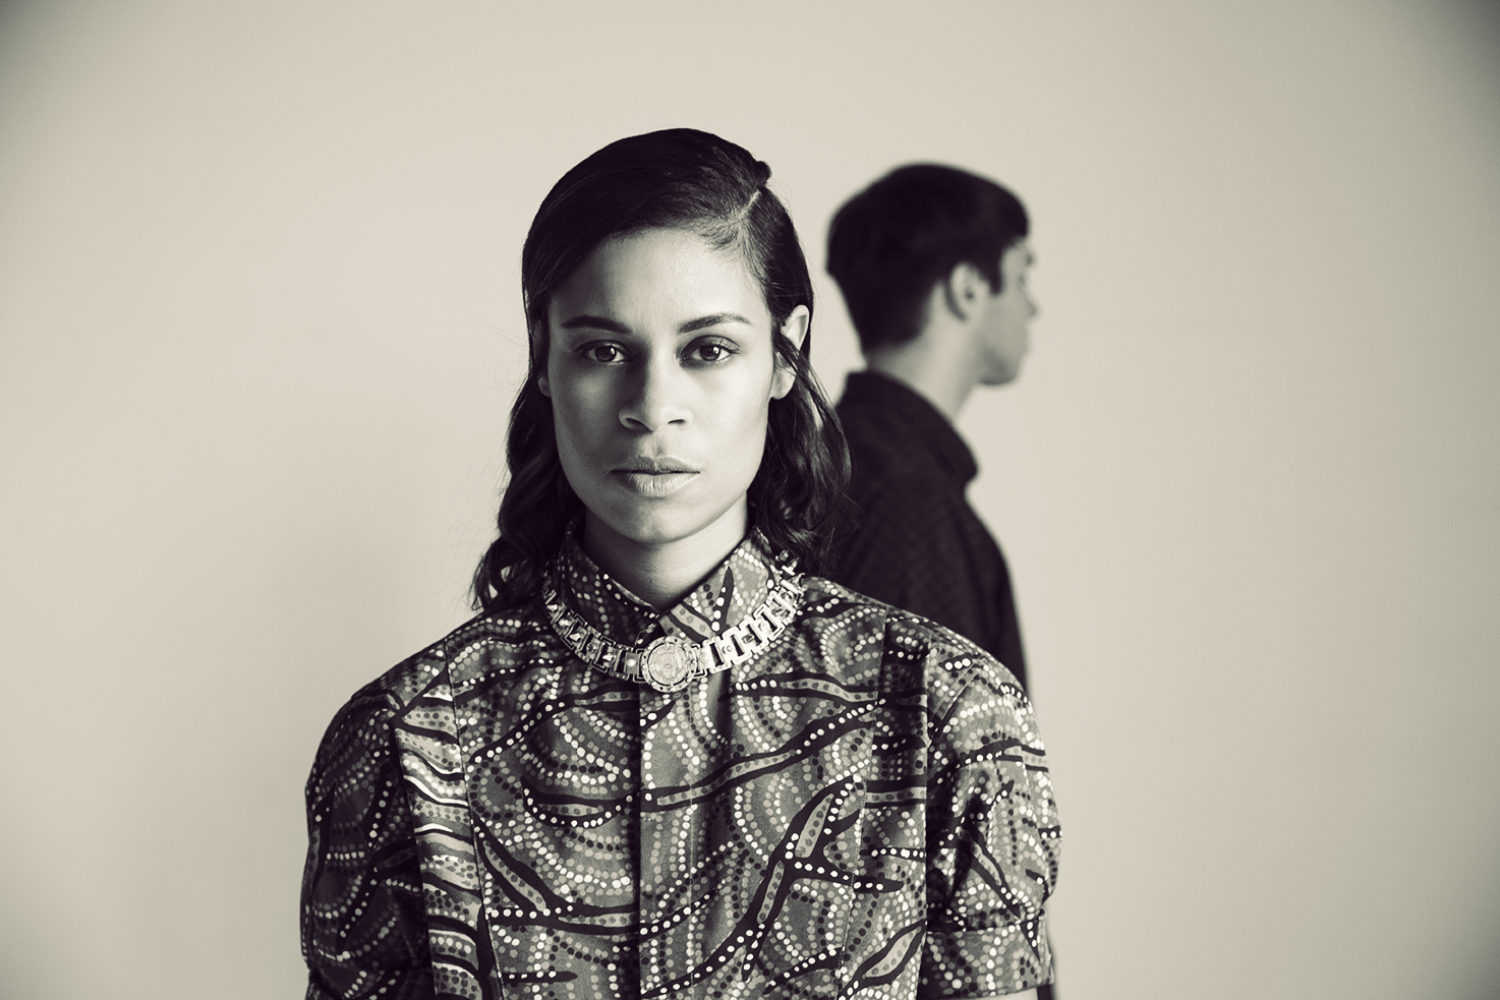 AlunaGeorge are coming back very soon with a new single